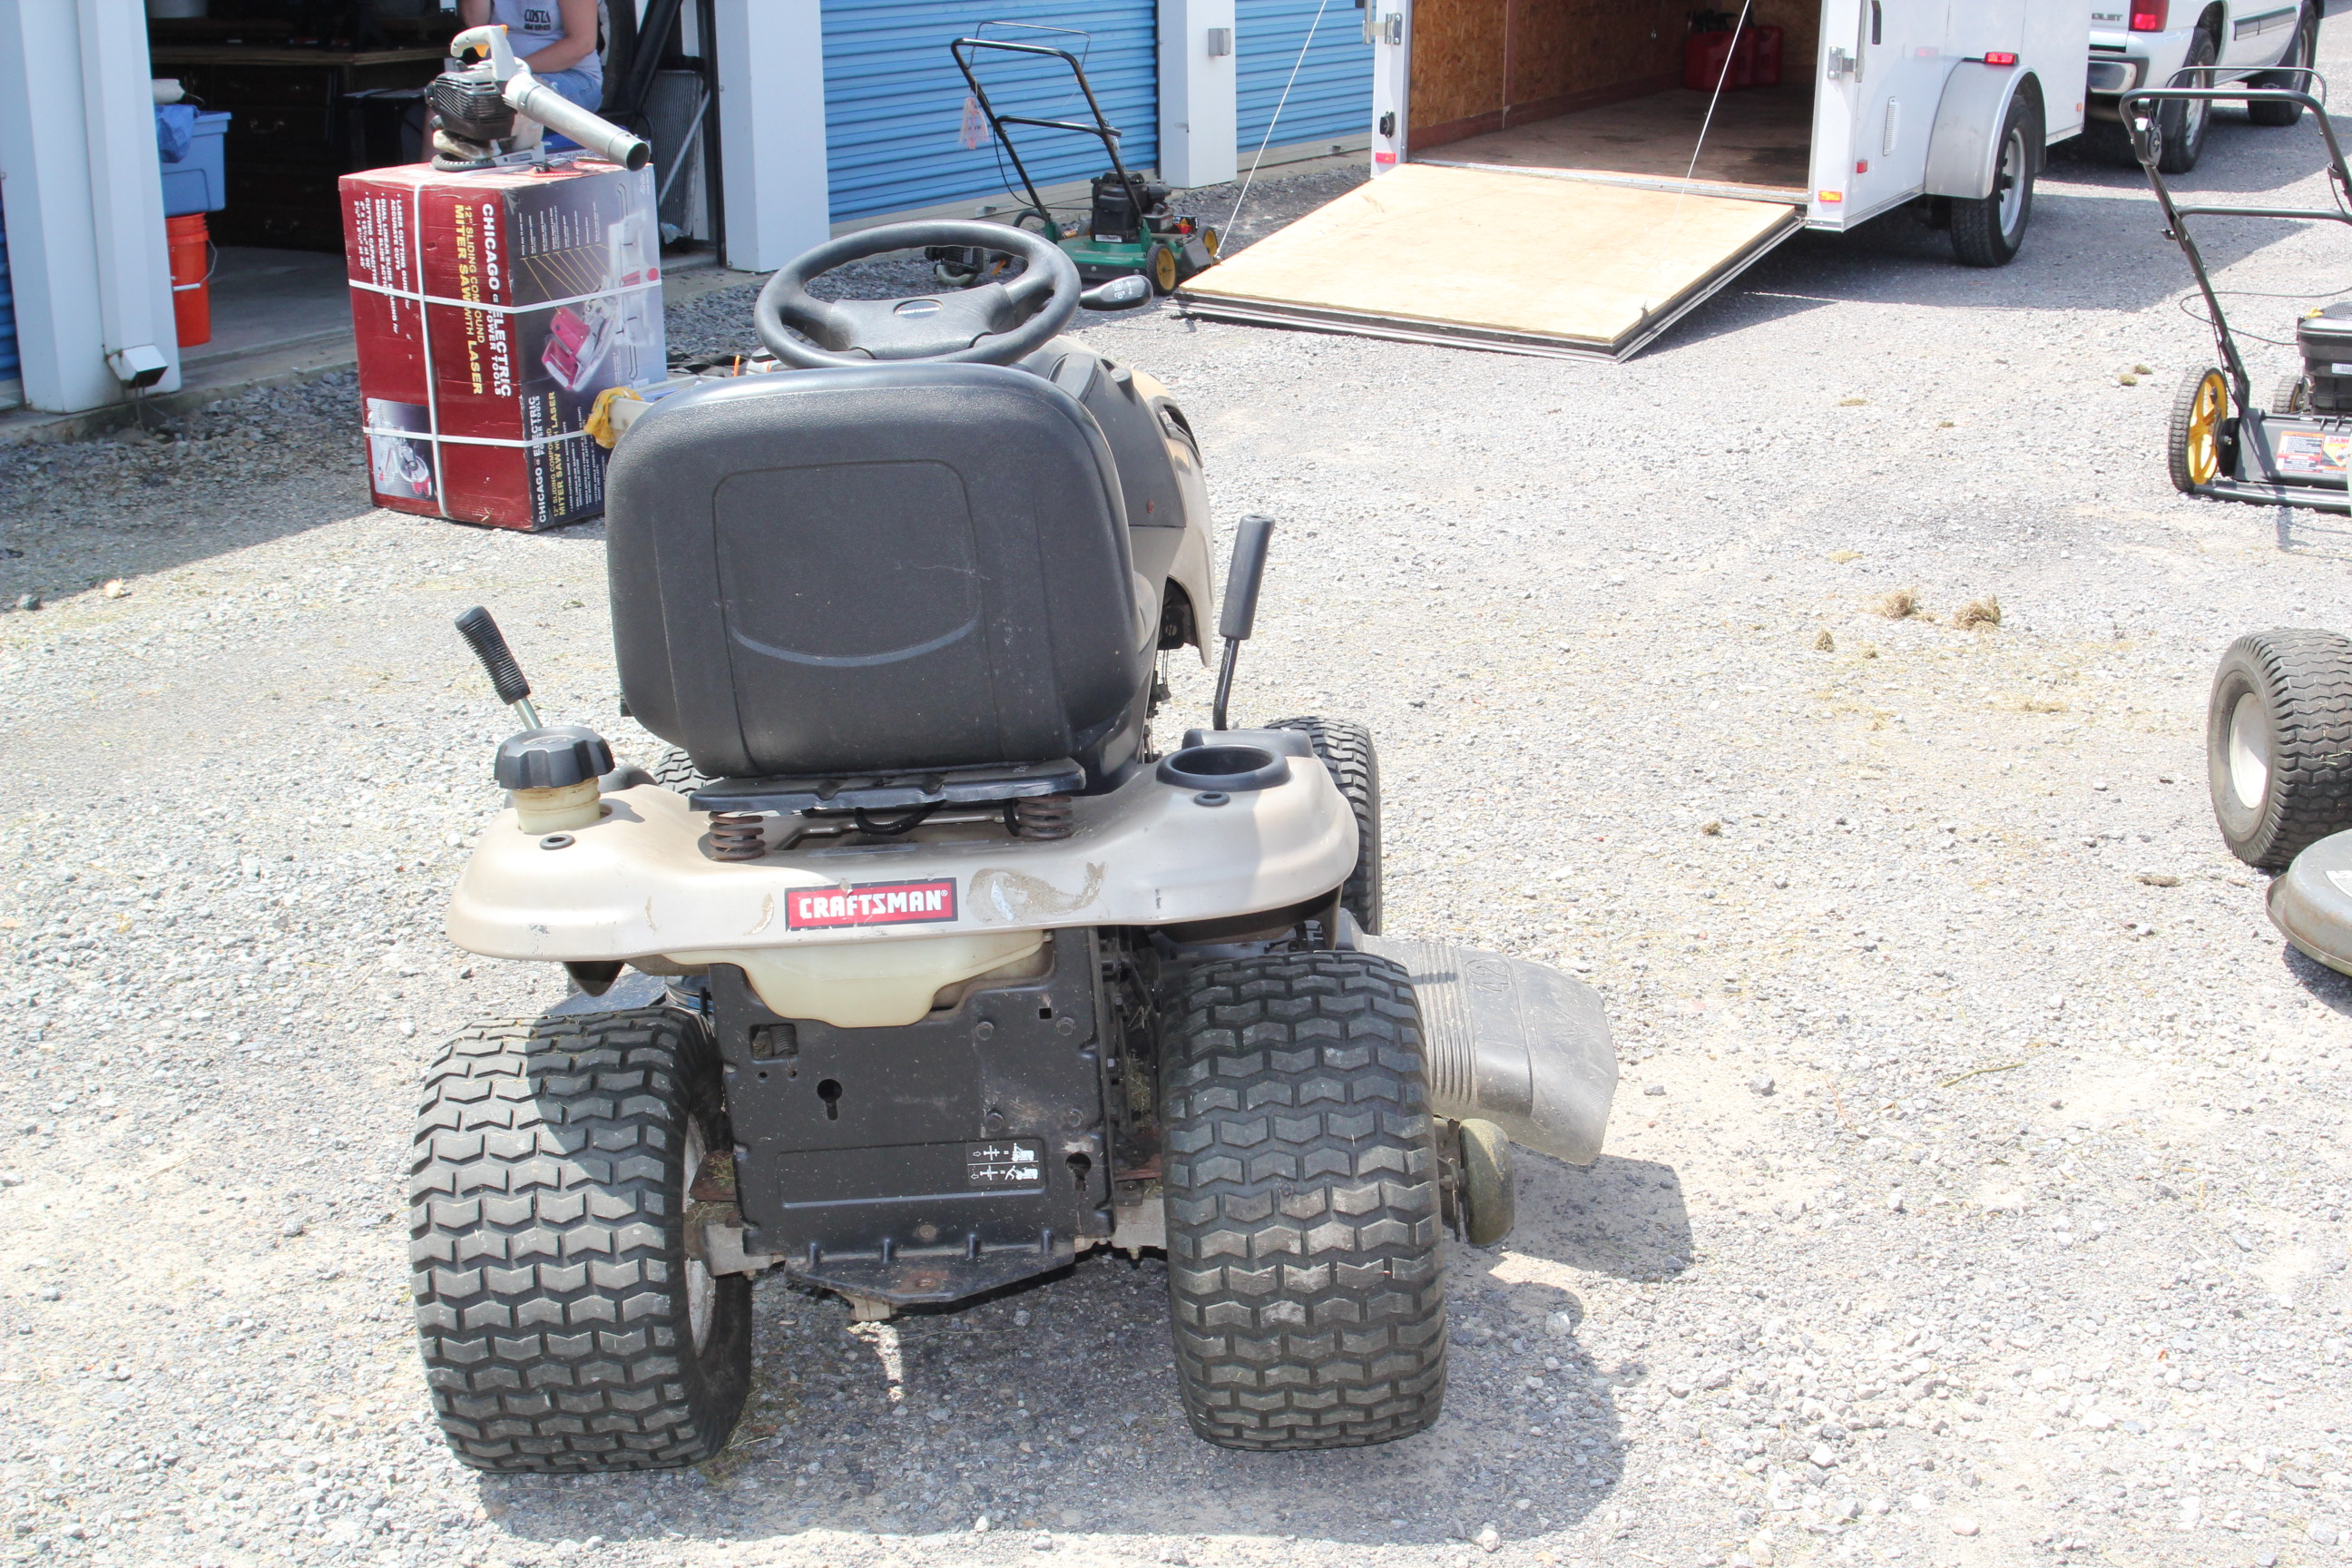 Craftsman ys 4500 lawn Tractor Owner s manual